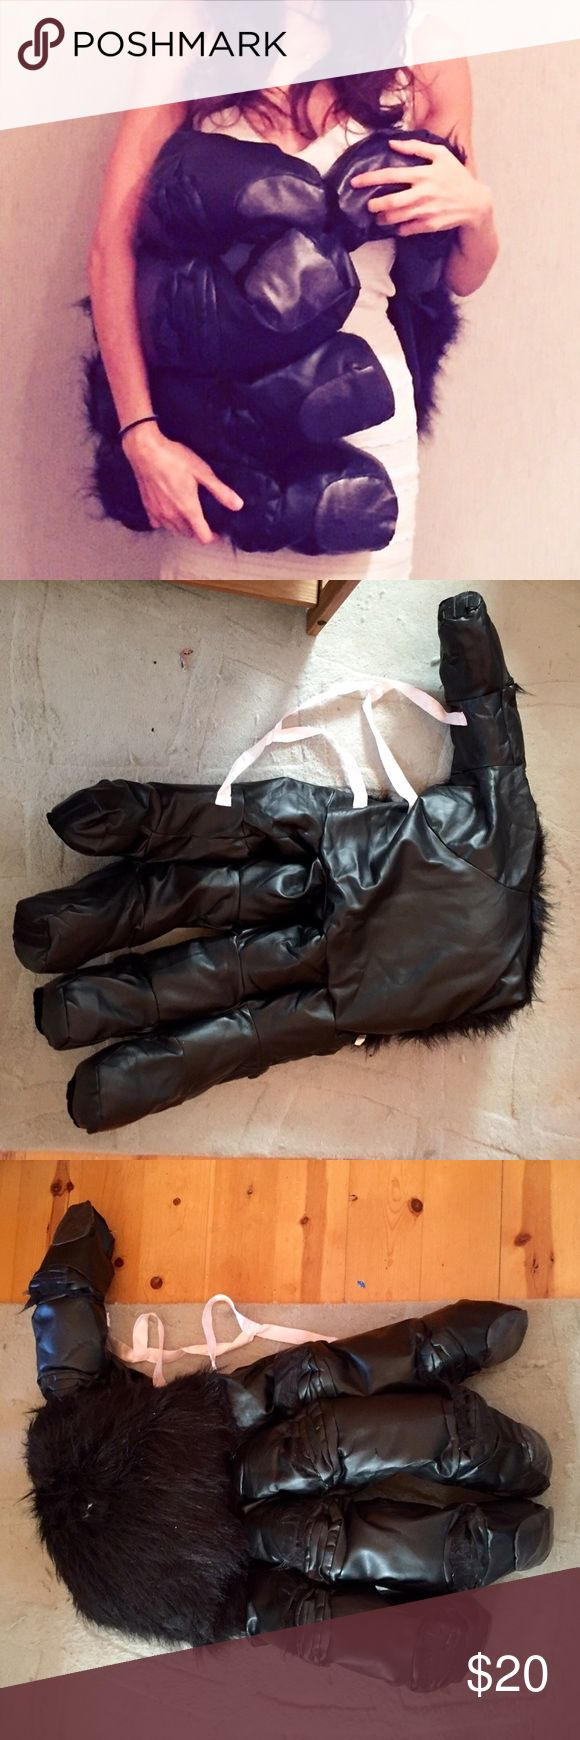 King Kong Hand Costume King Kong Hand Costume. Used once. Other